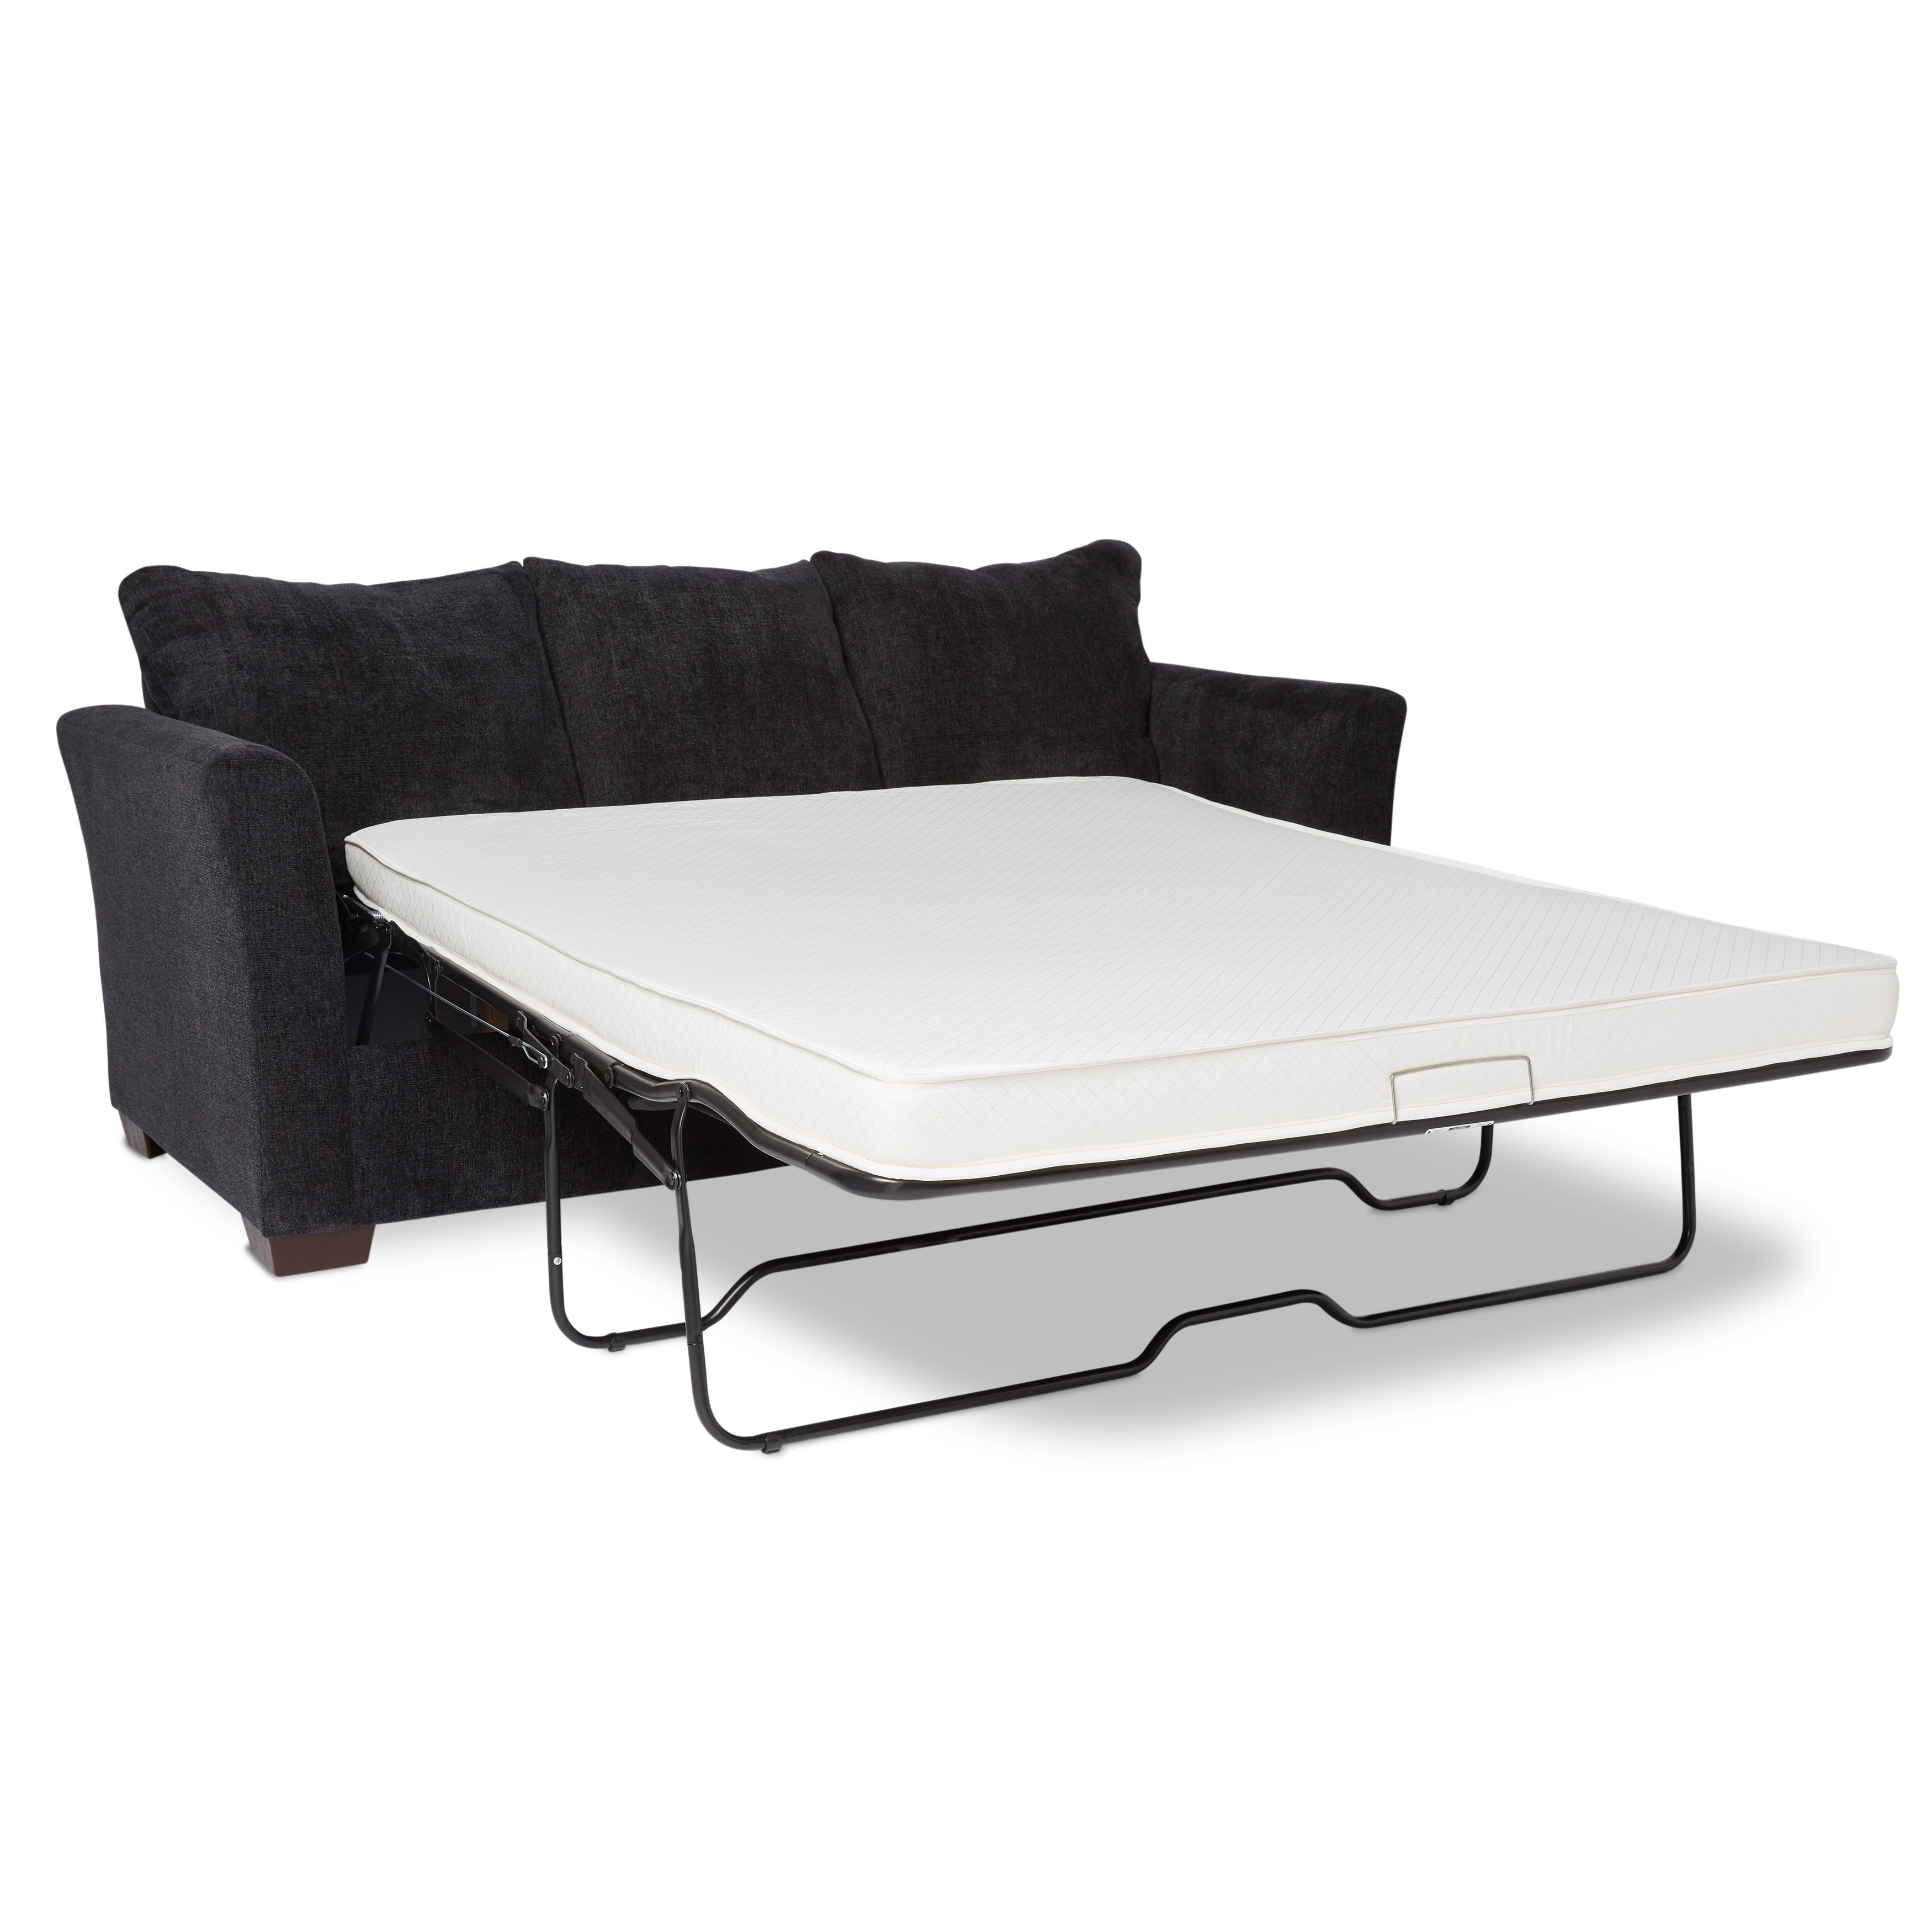 Fold out sofa bed mattress for Sofa bed 5 in 1 murah